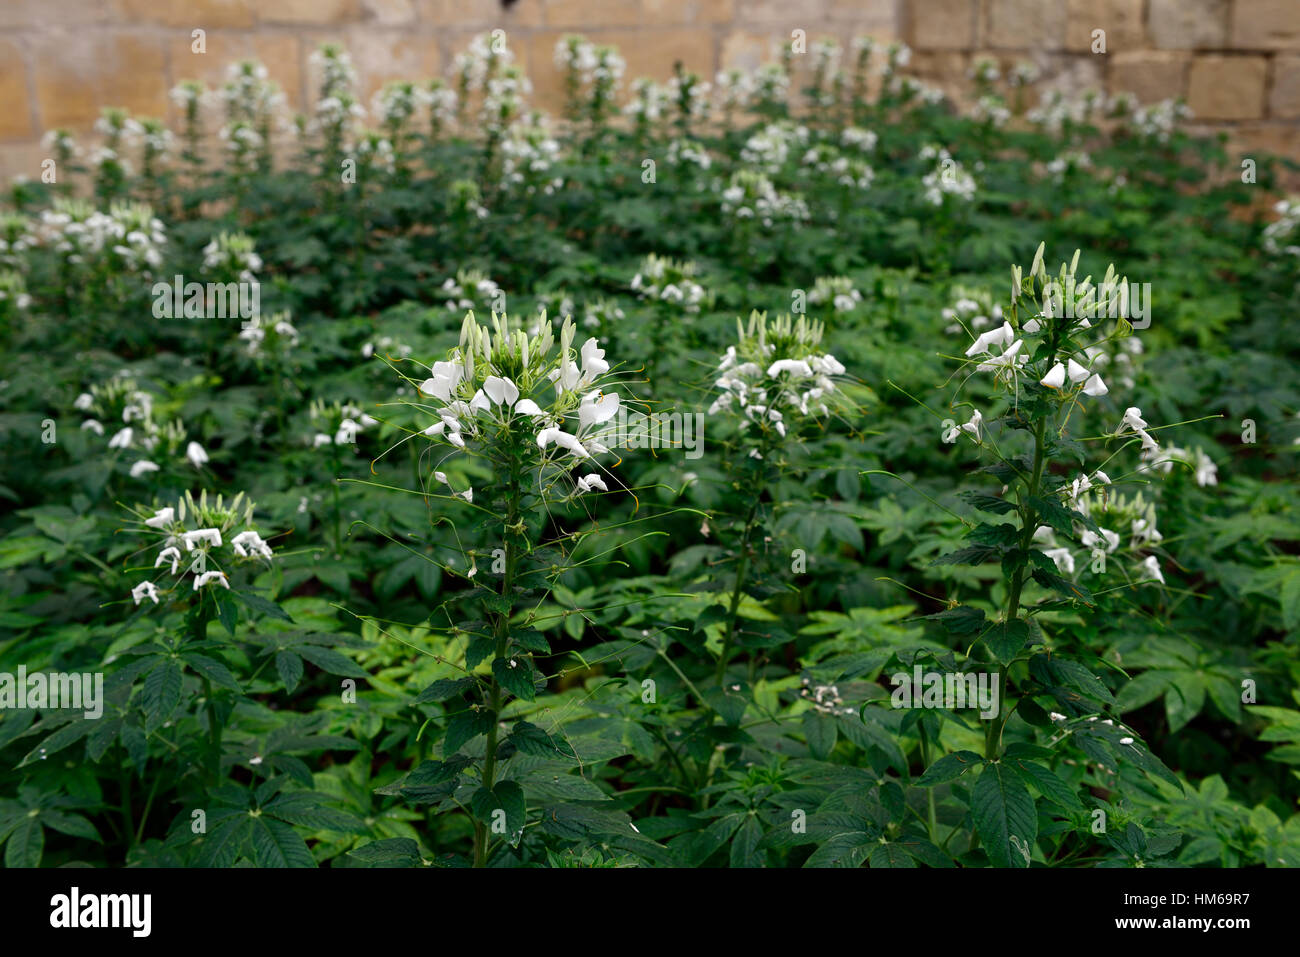 Cleome hassleriana syn spinosa white spider flower flowers flowering bed border display displays RM Floral - Stock Image